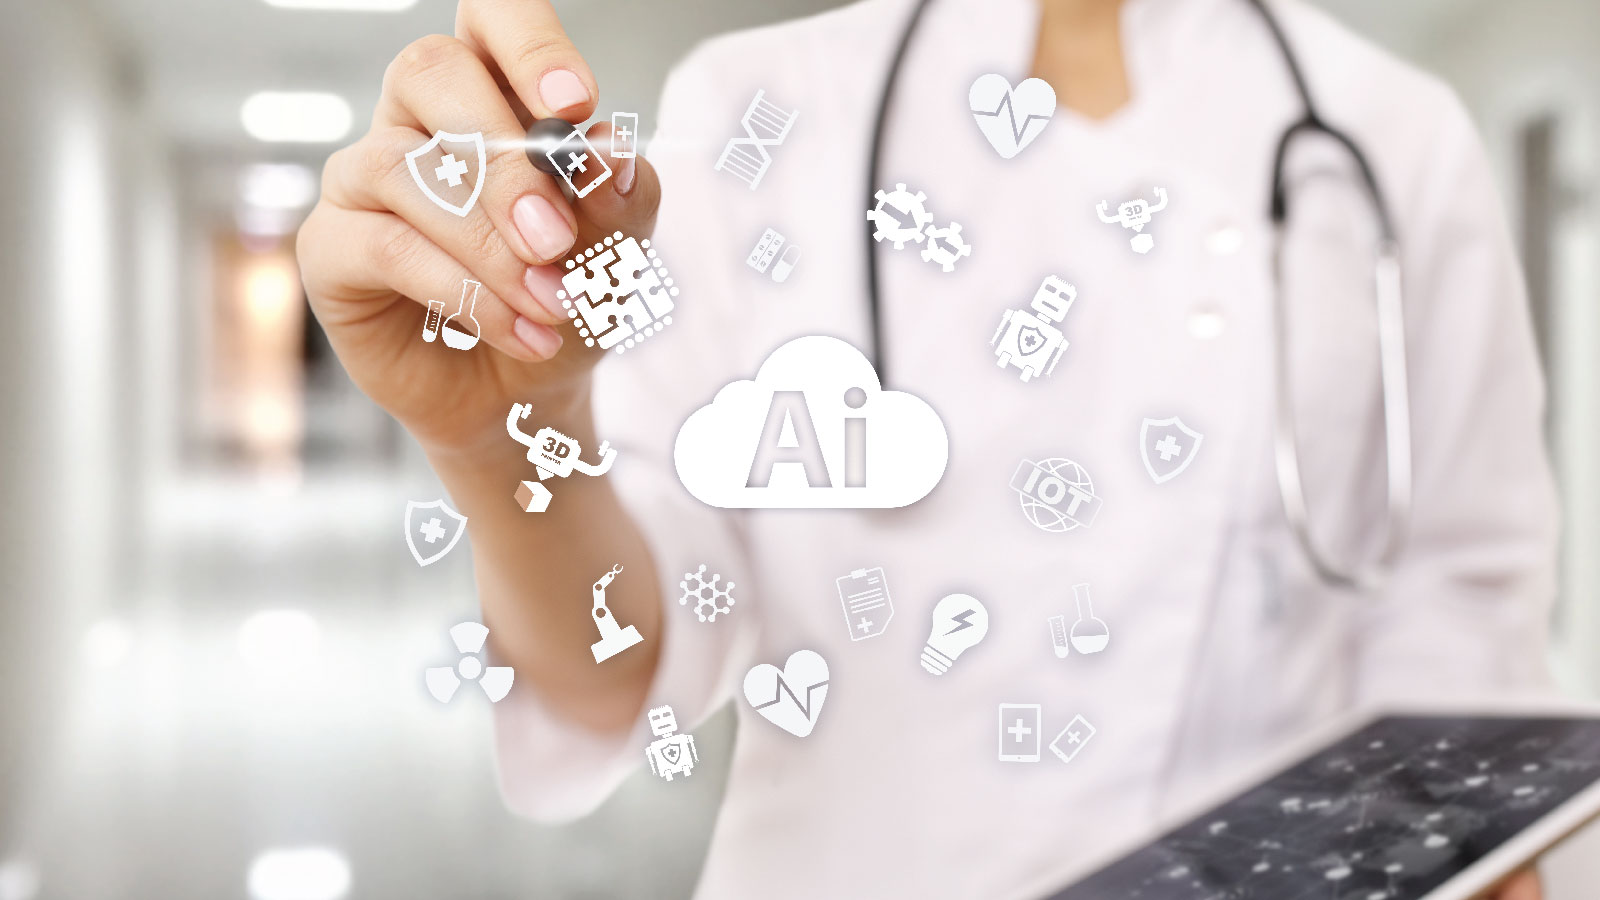 AI, artificial intelligence, healthcare, healthcare sector, digitization, KPMG, implementation, skills, automation, privacy, security, data, patient data, AI tools, AI implementation CTO, CEO, AI, artificial intelligence, healthcare, healthcare sector